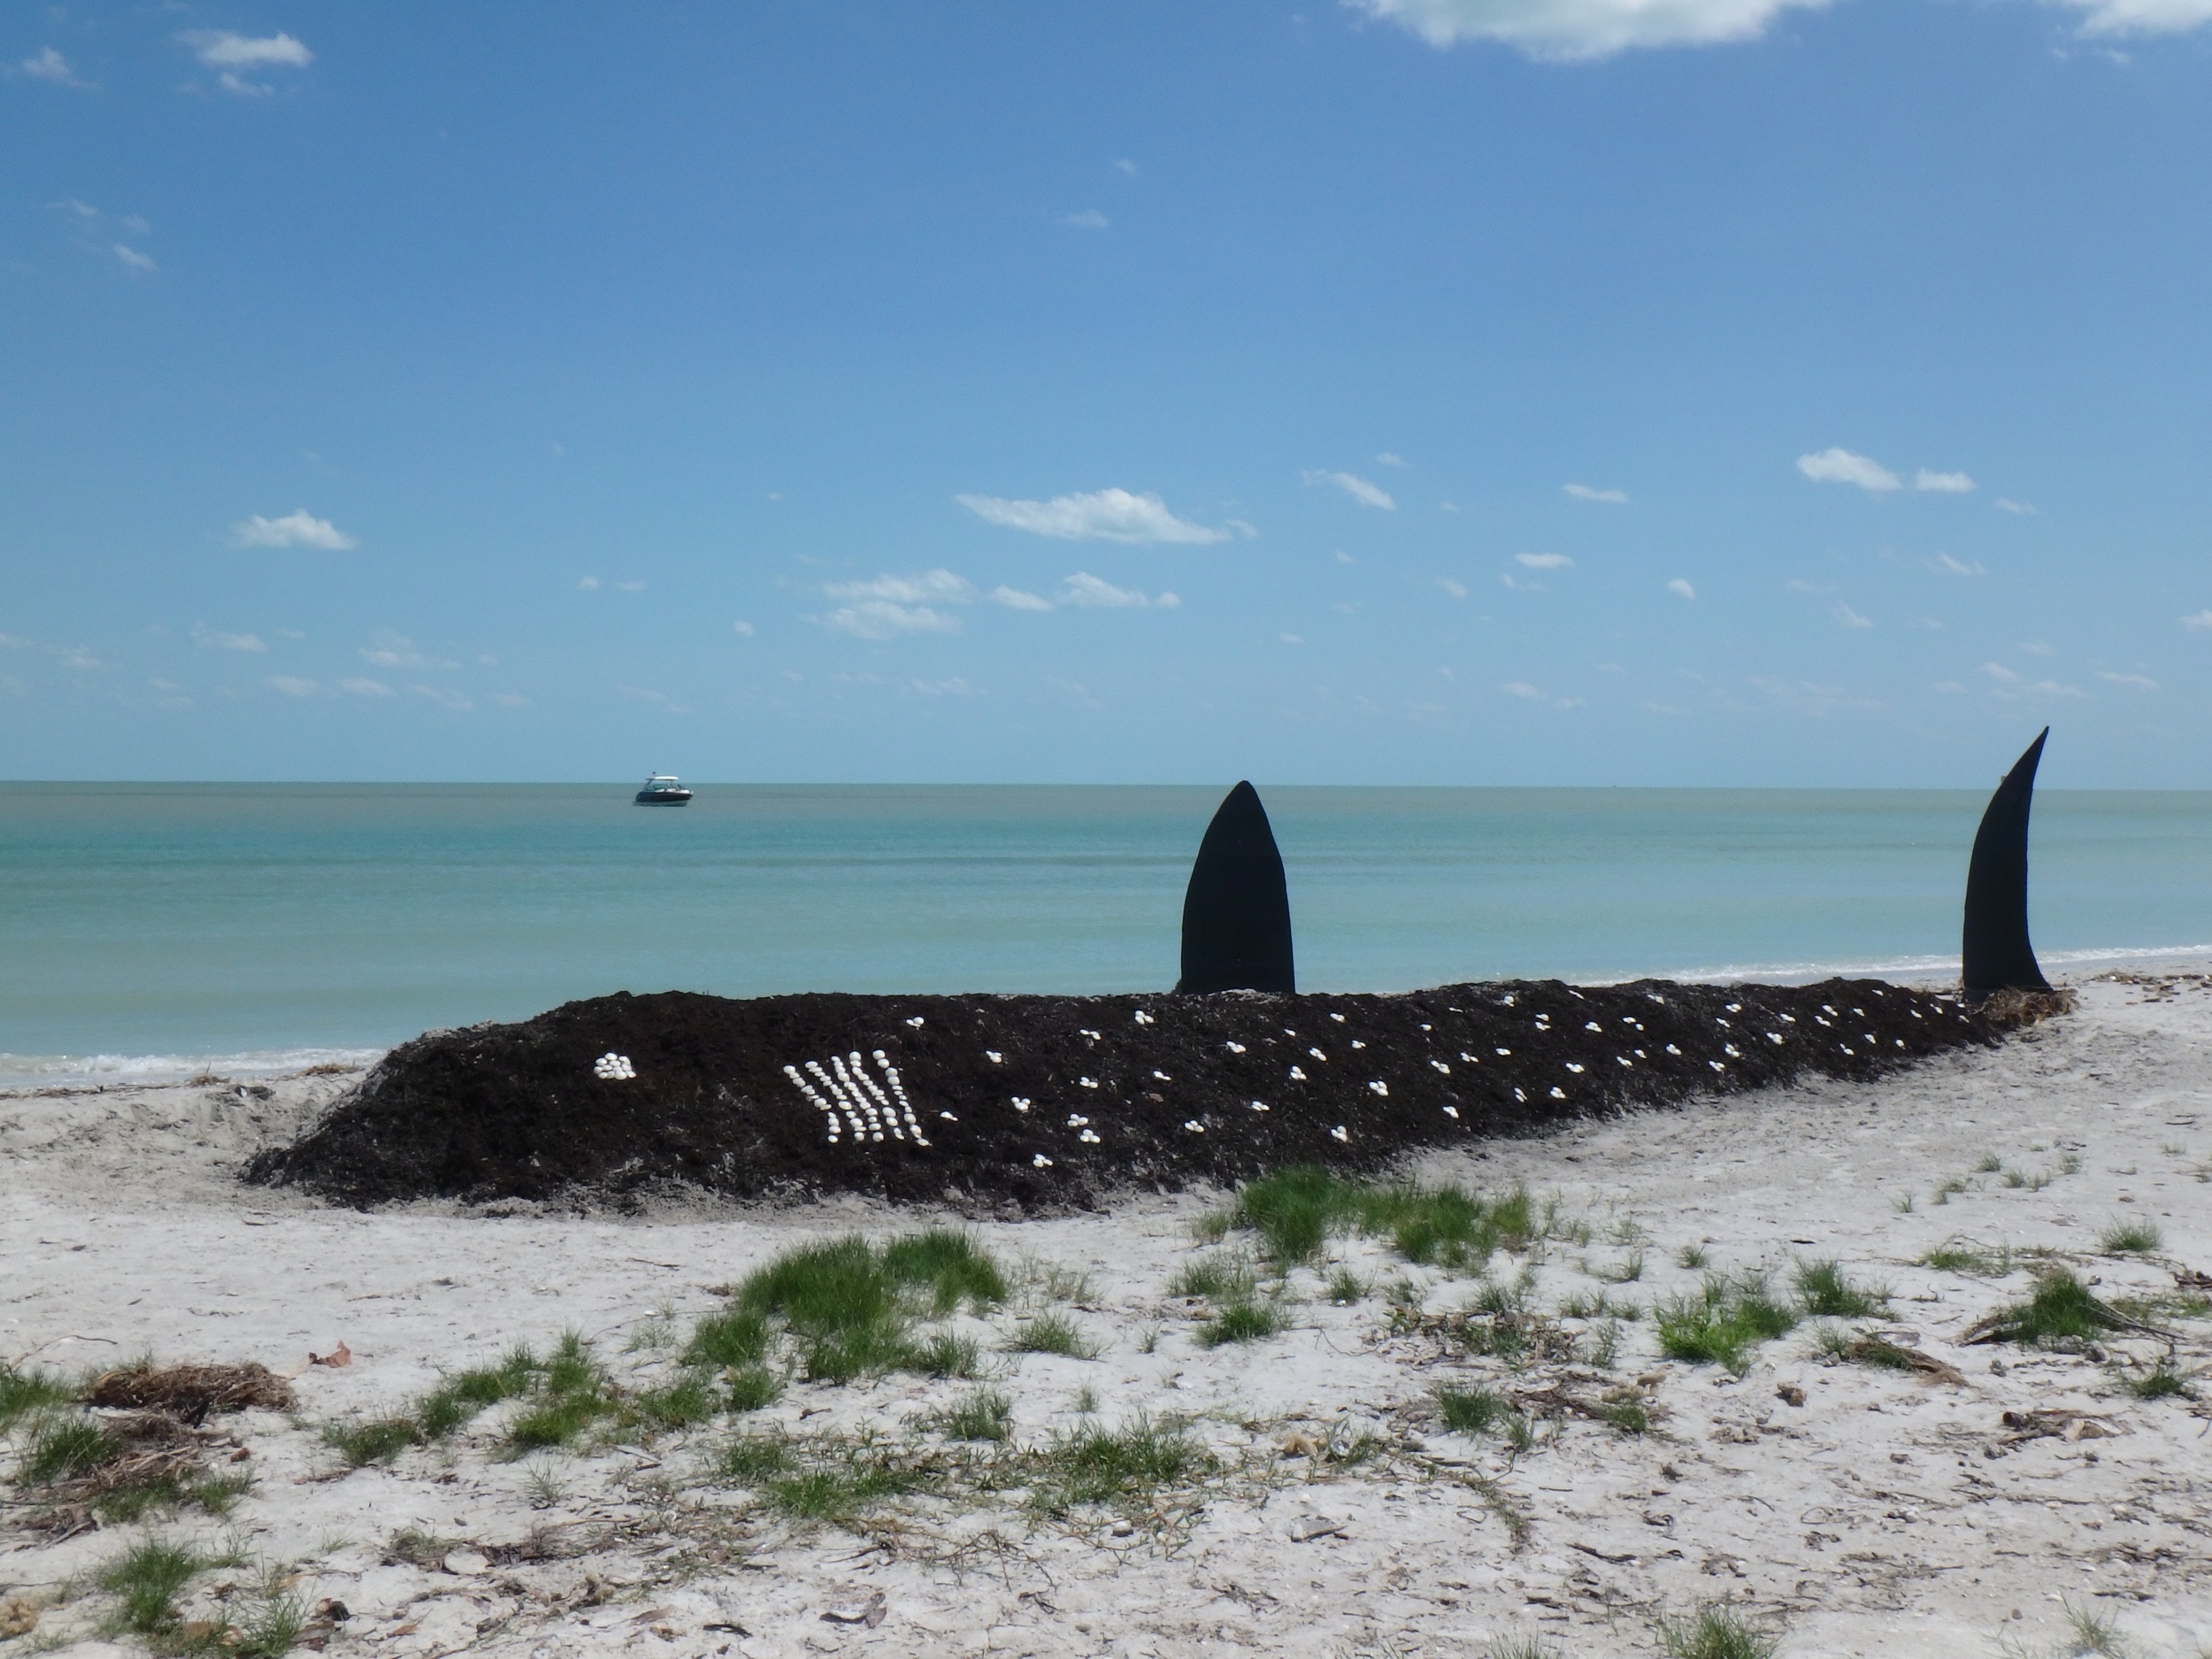 A life-sized whale shark sand sculpture built by Sanibel Sea School students for the PBS KIDS series SPLASH.